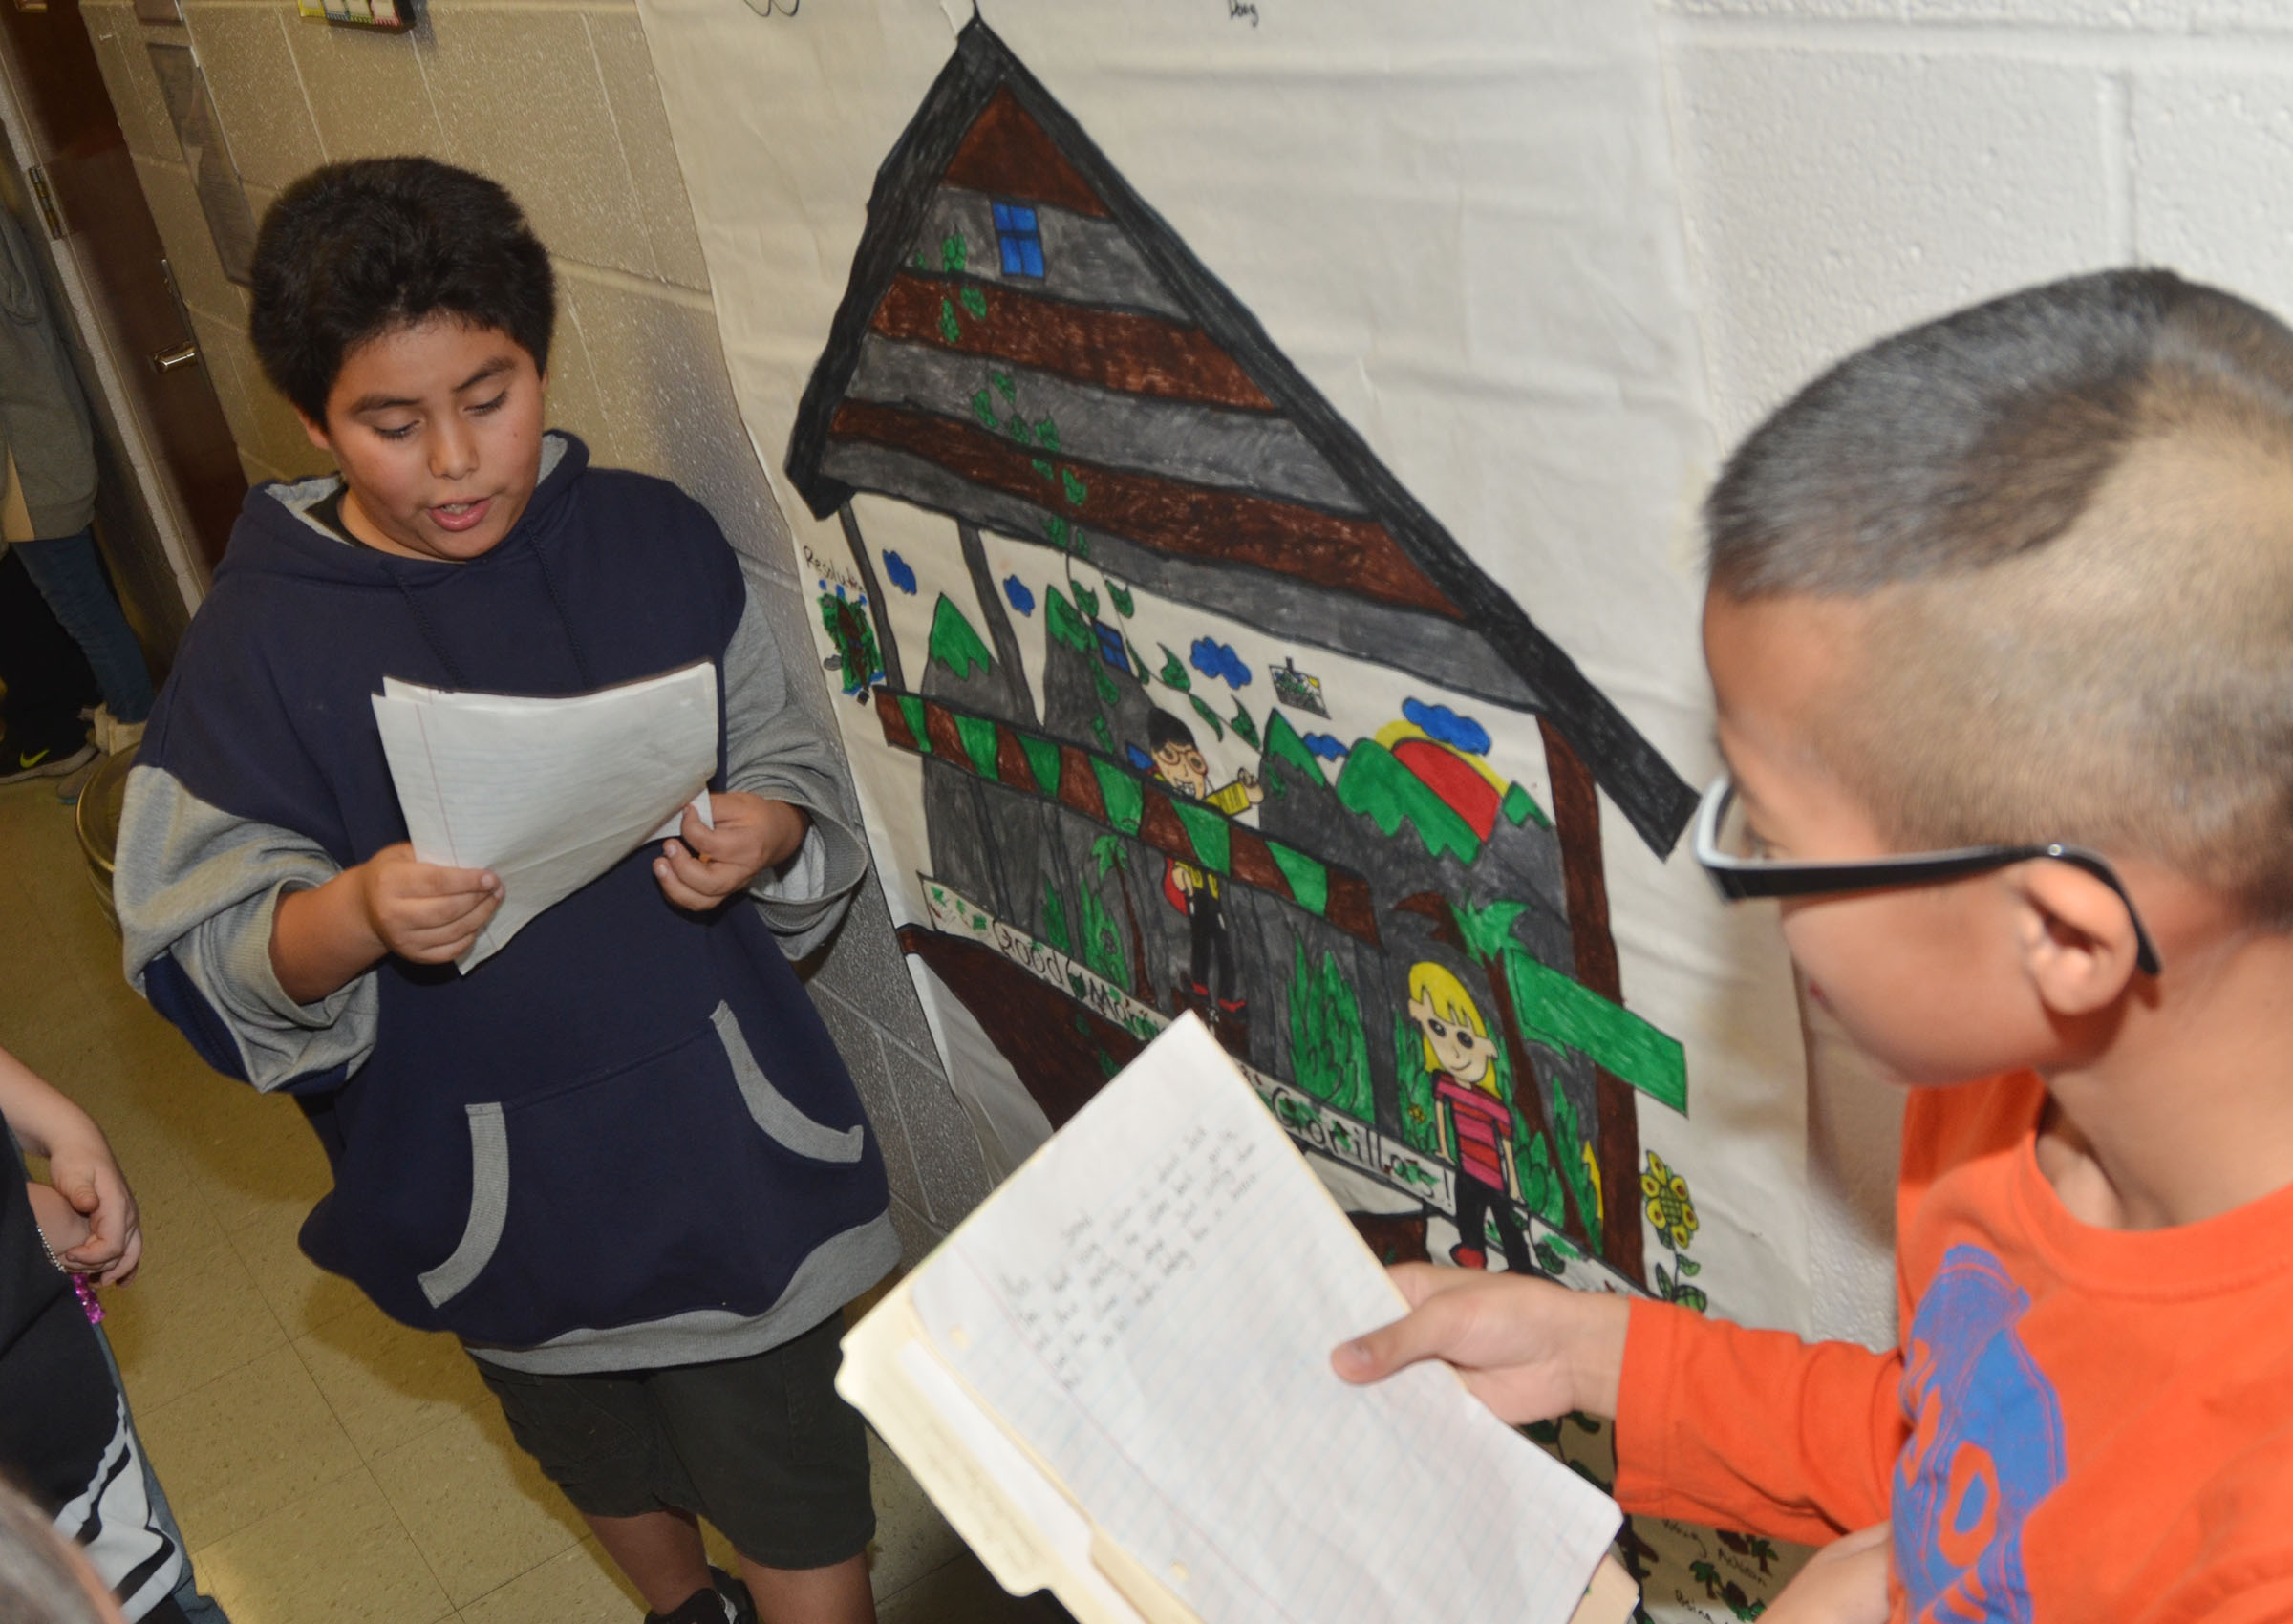 CMS fifth-graders Alex Martinez, at left, and Shawn Dong present their group's treehouse project.